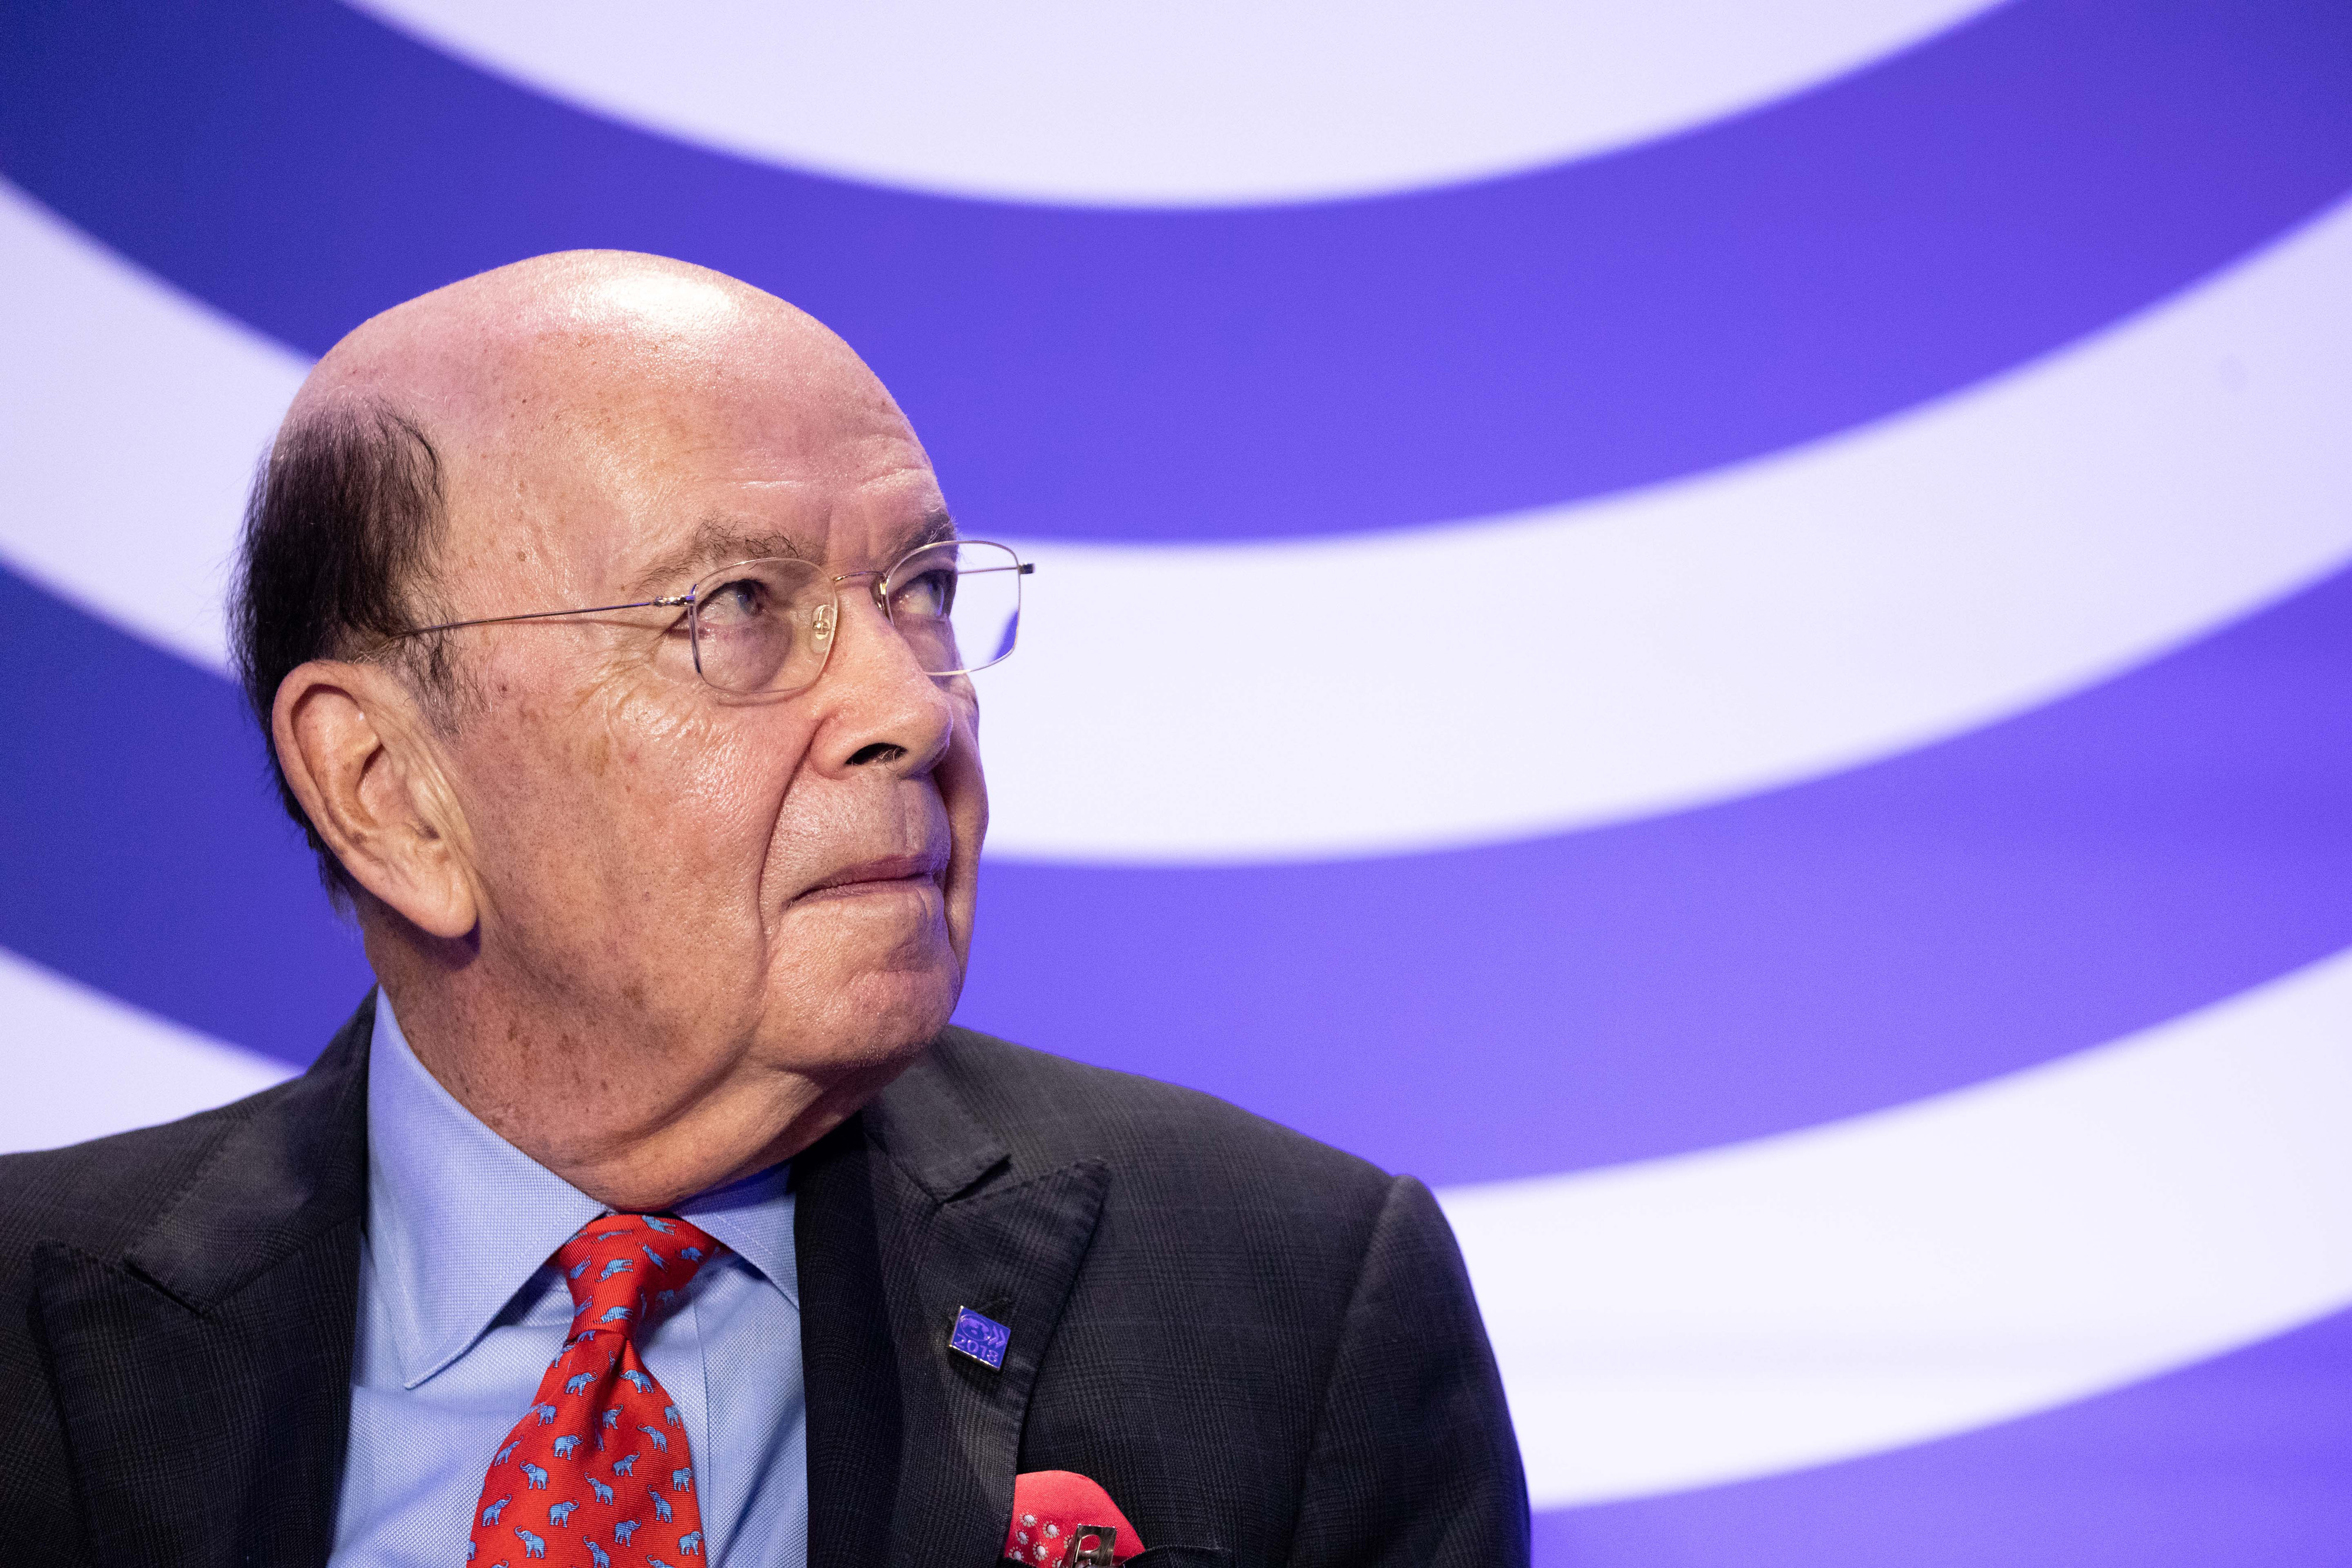 U.S. Commerce Secretary Wilbur Ross And France's President Emmanuel Macron Speak At OECD Conference